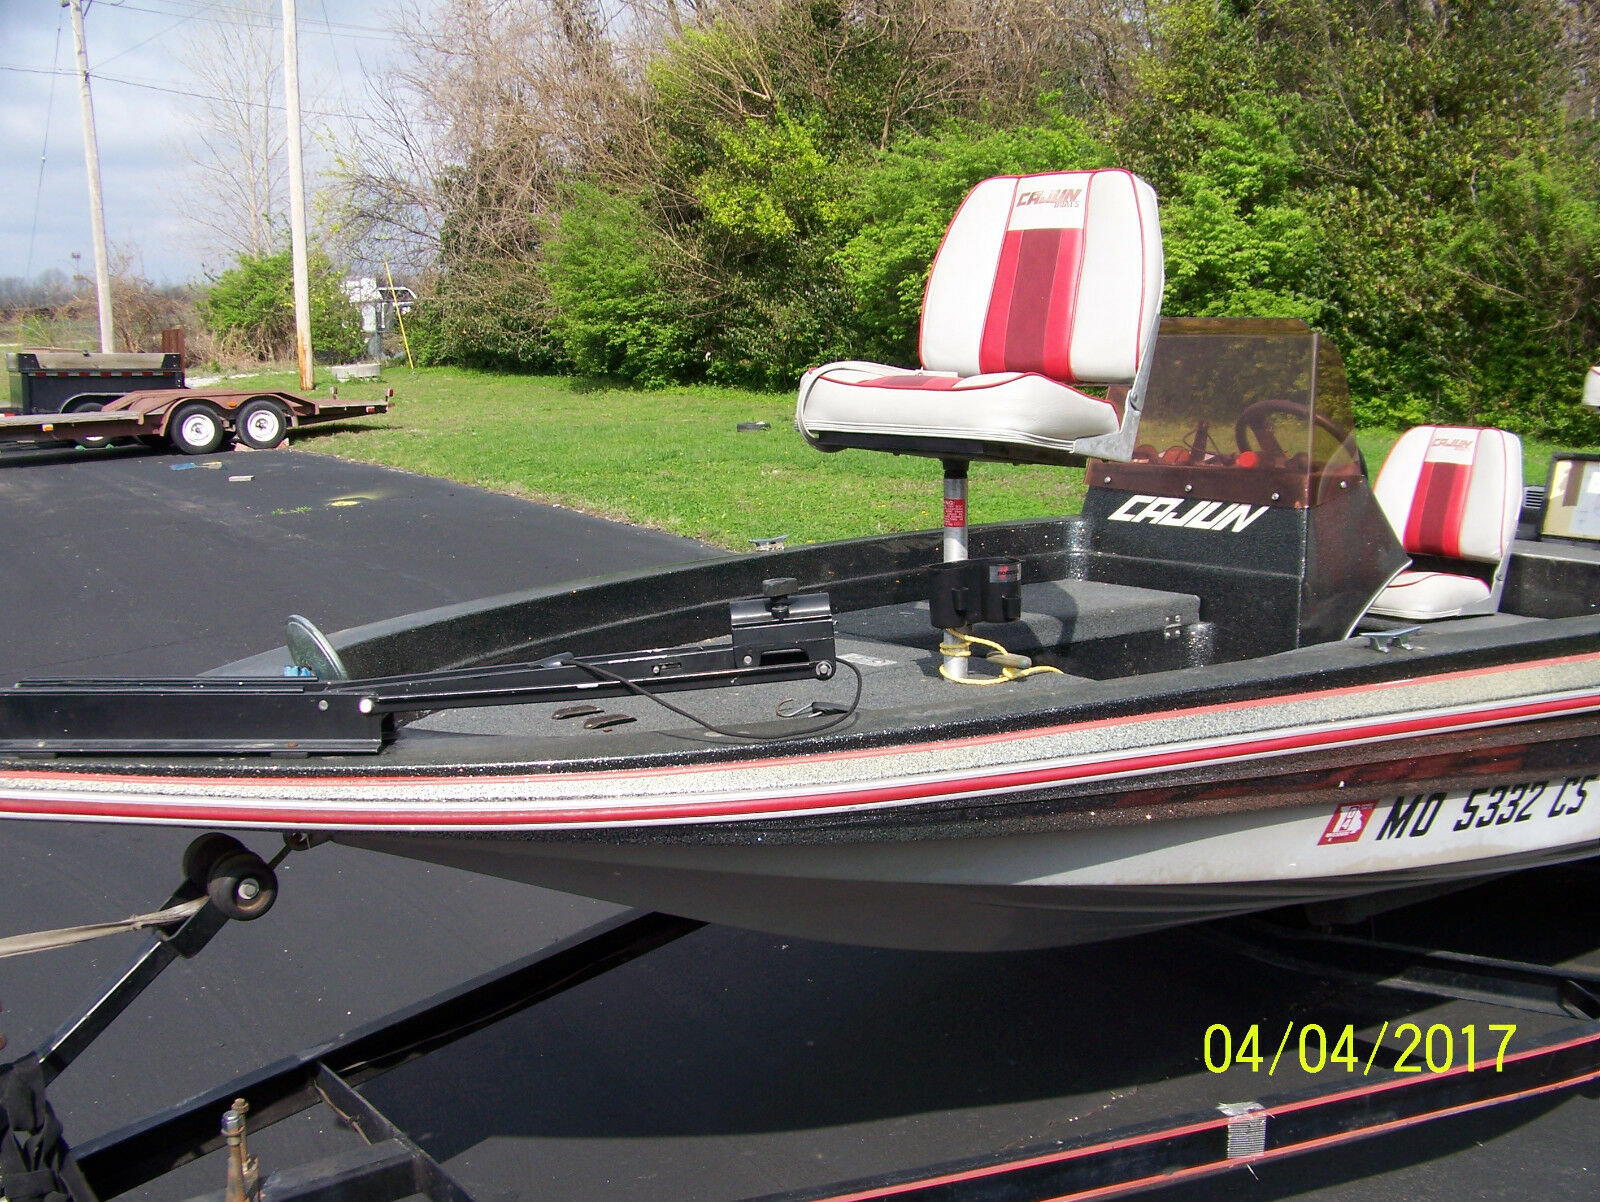 1989 cajun bass boat 16 4 fiberglass outboard for Bass boats with evinrude motors